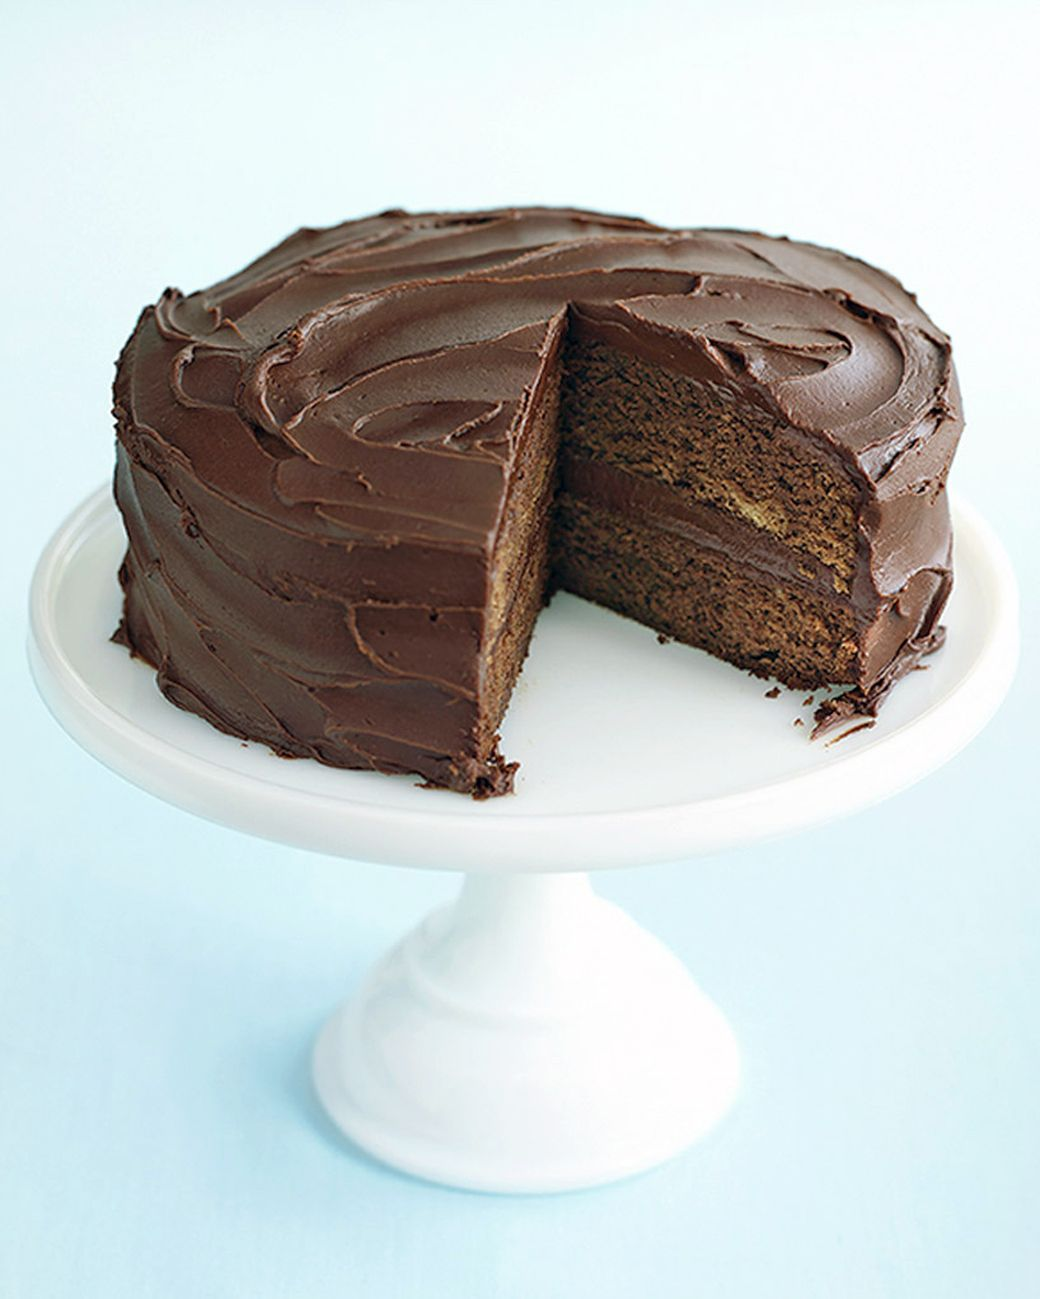 This recipe, from Cynthia Avice of Lusby, Maryland, calls for a cup of freshly brewed coffee to be added to the batter. You won't taste it in the finished cake; the coffee is there to intensify the flavor of the chocolate.